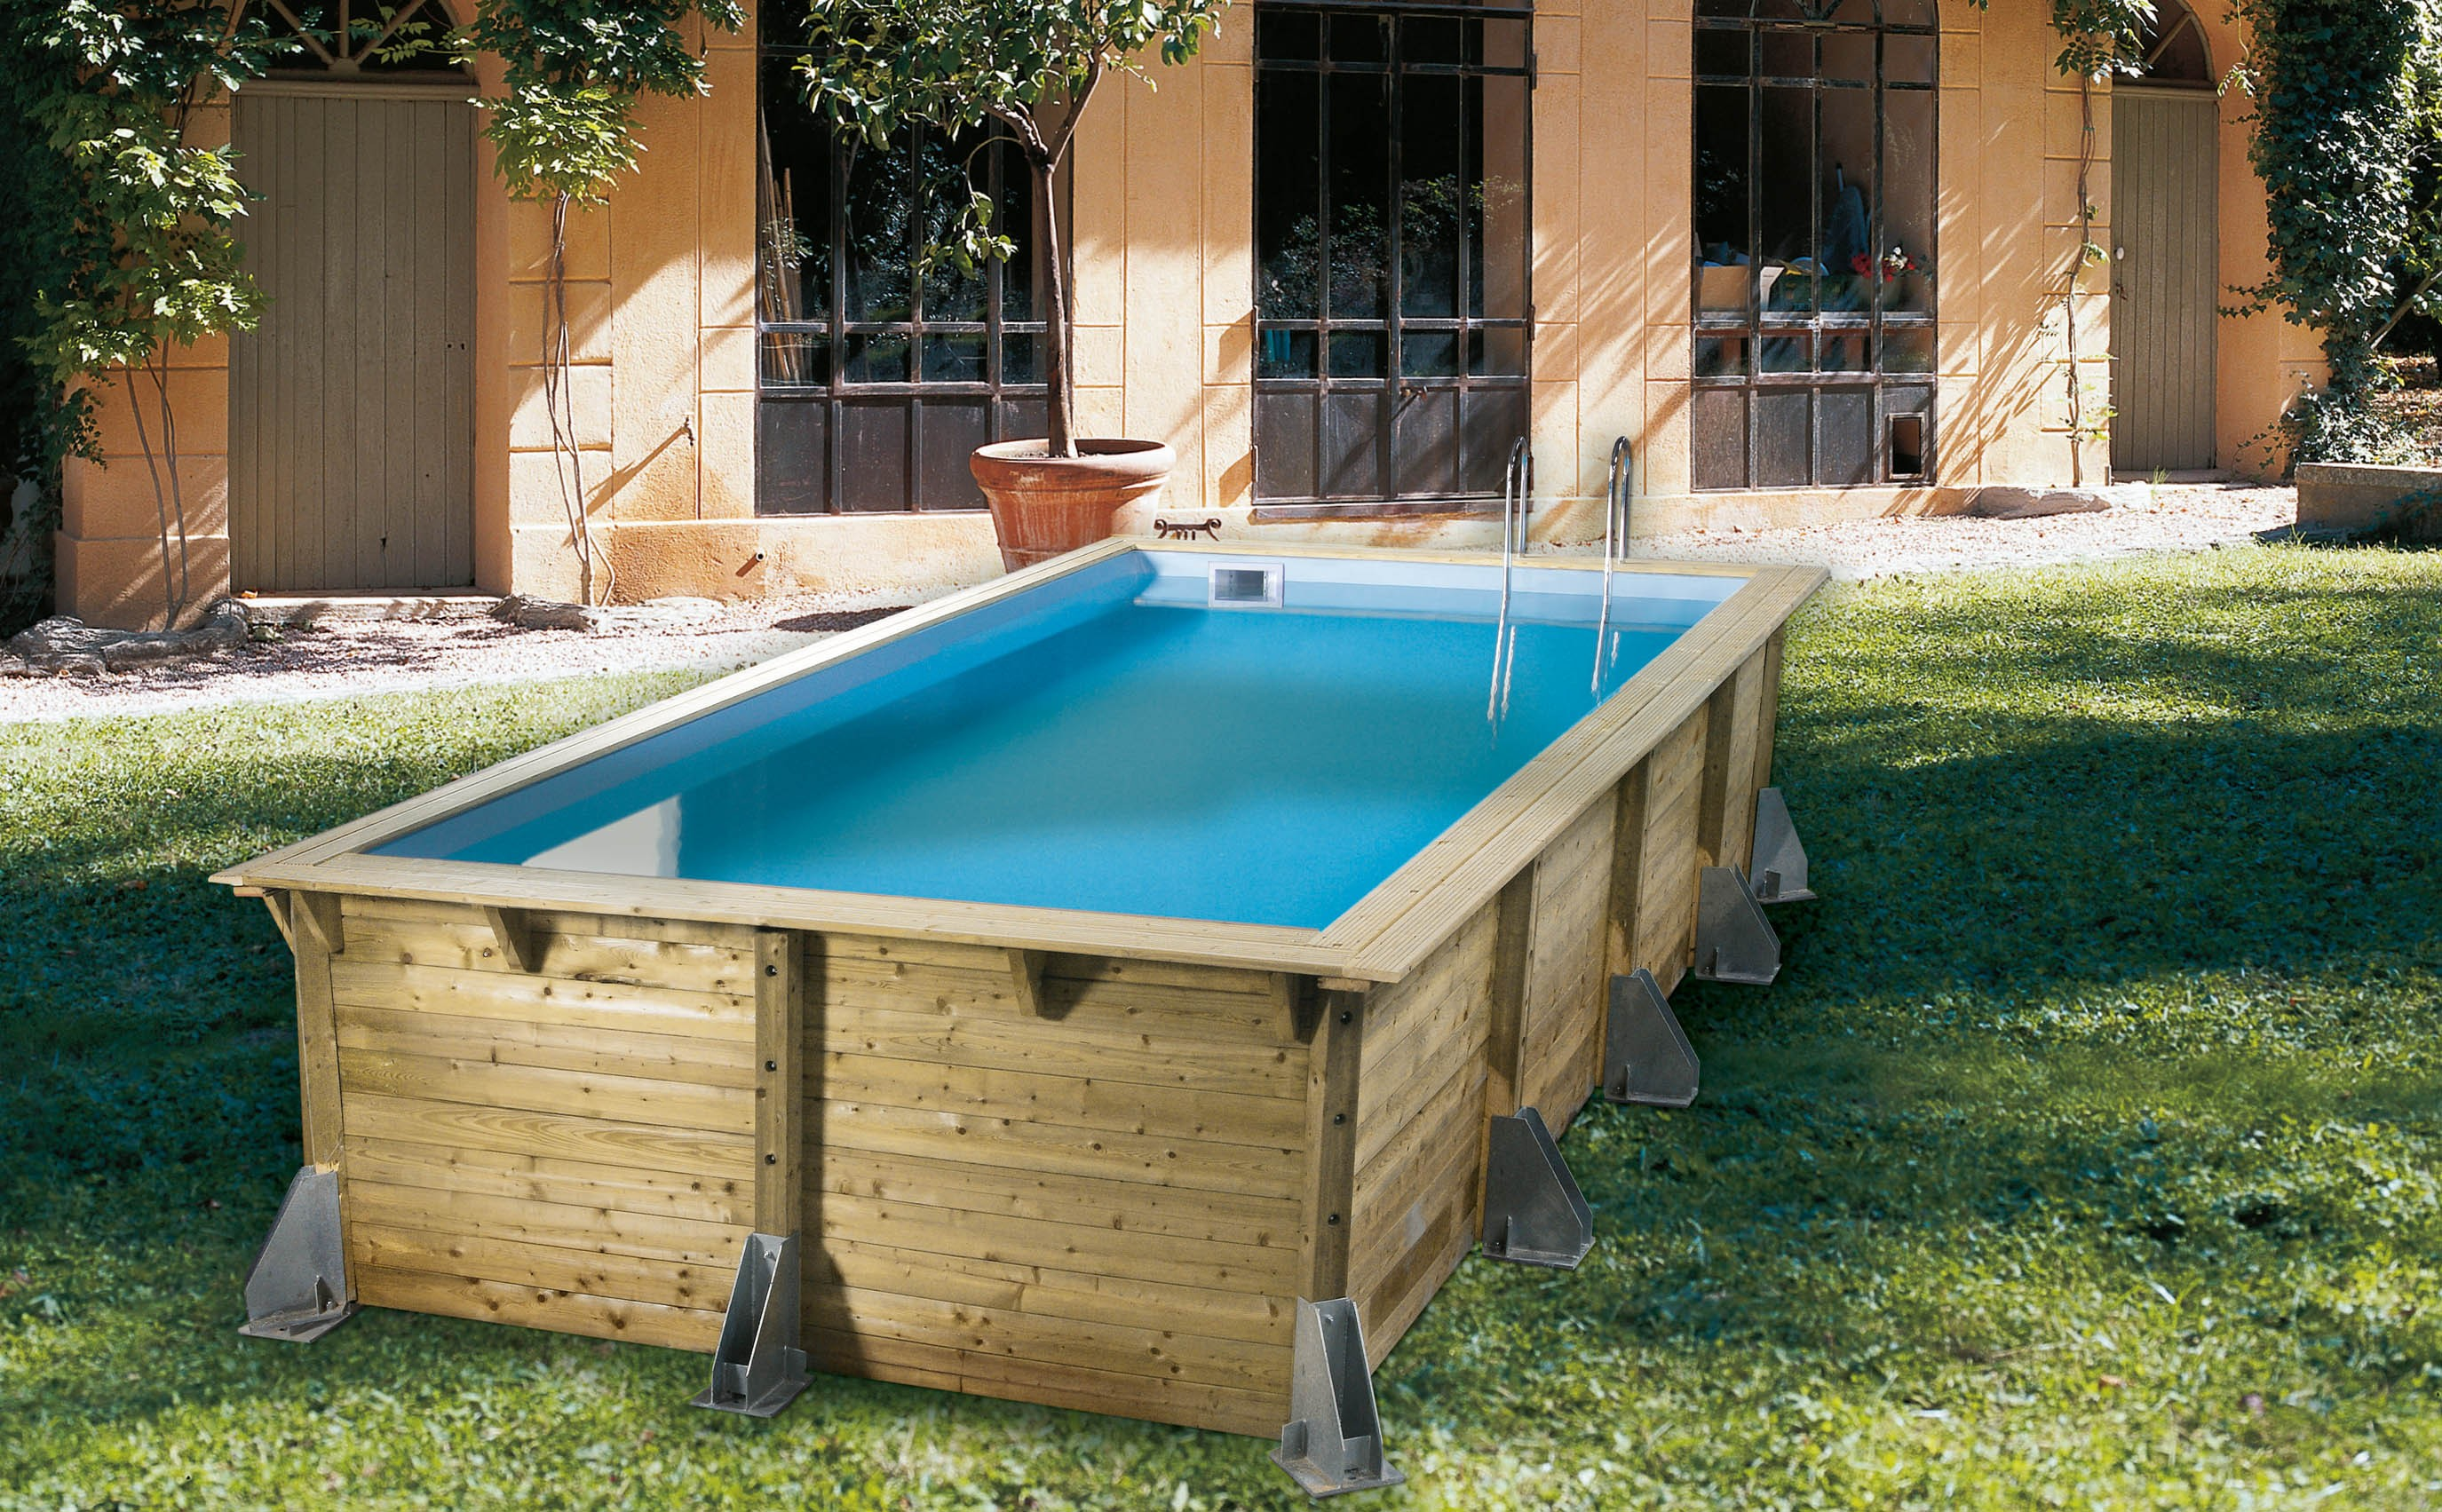 Piscine rectangulaire hors sol for Piscine hors sol dimension